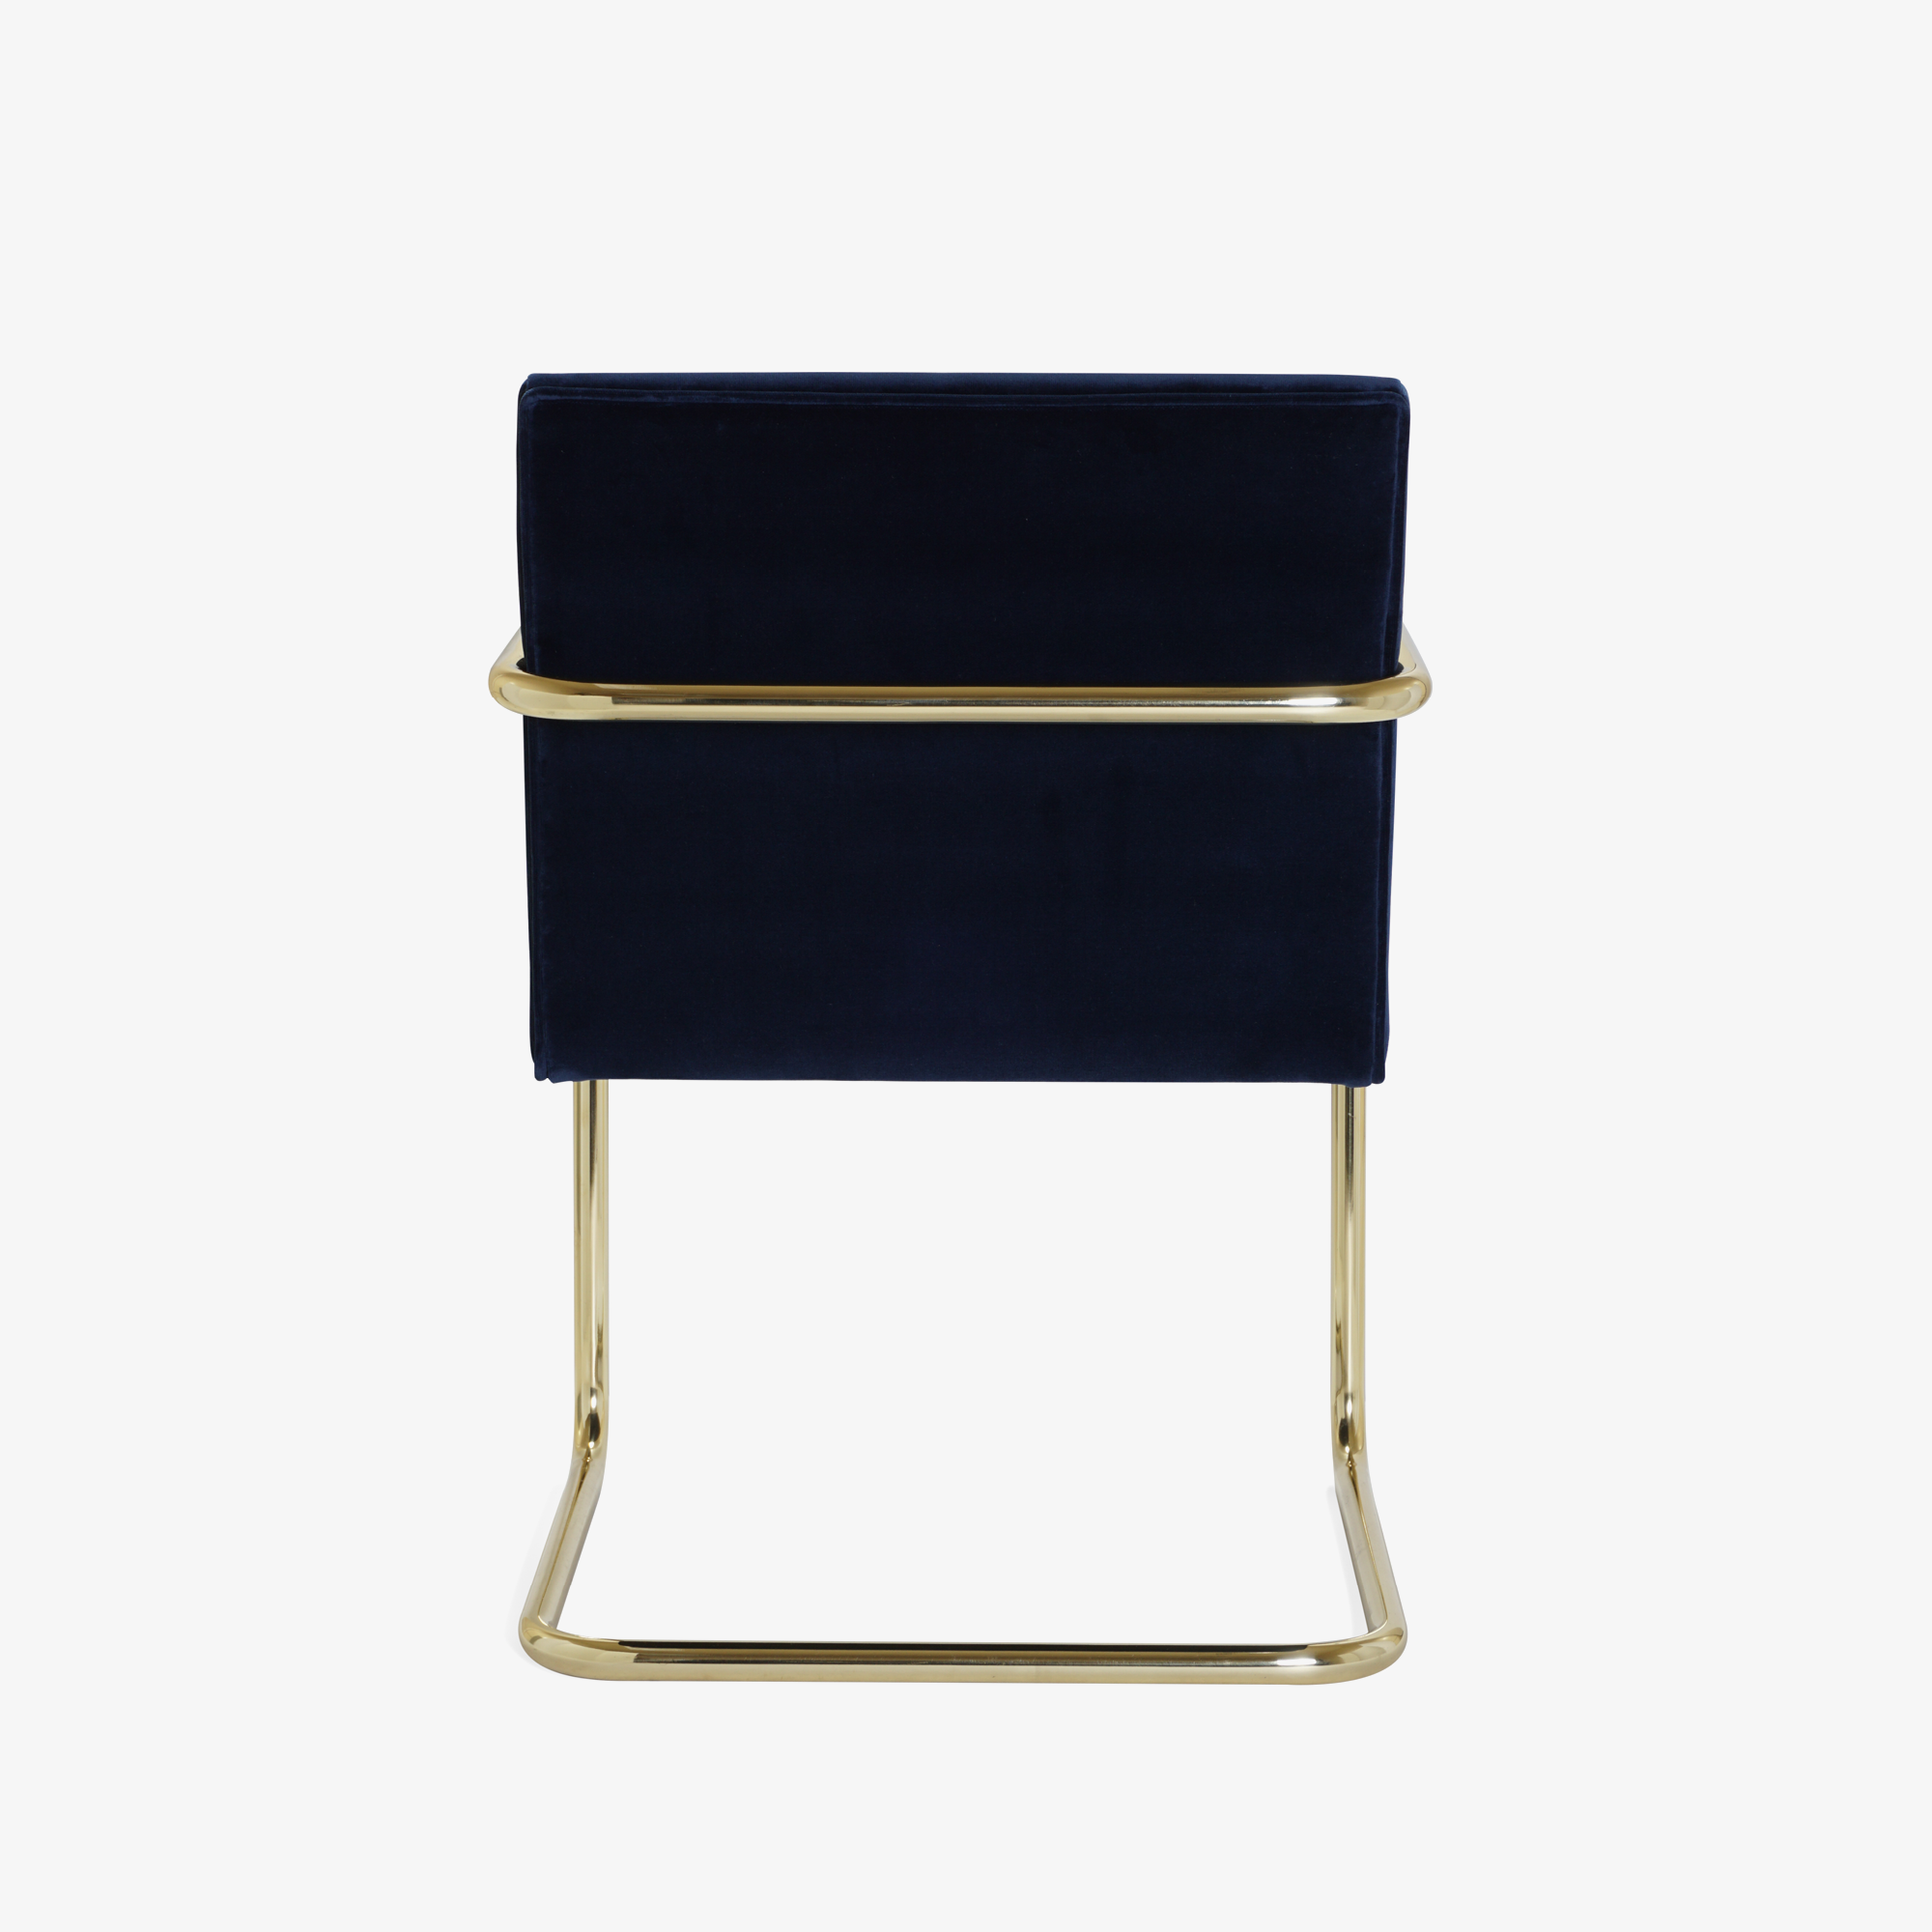 Brno Tubular Chair in Velvet, Polished Brass5.png